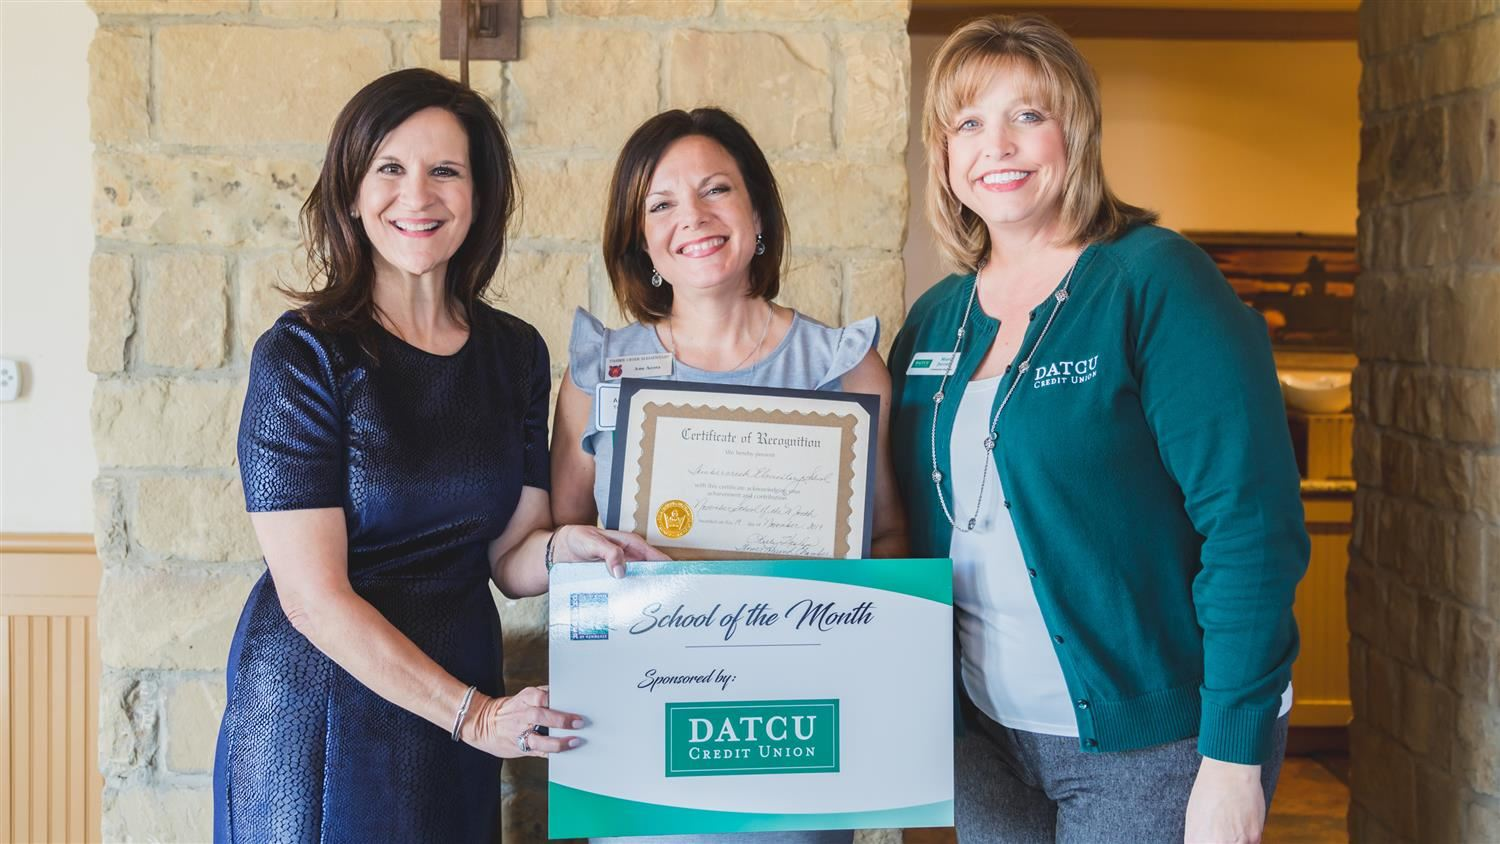 Timber Creek Elementary Named Flower Mound Chamber of Commerce/DATCU November School of the Month